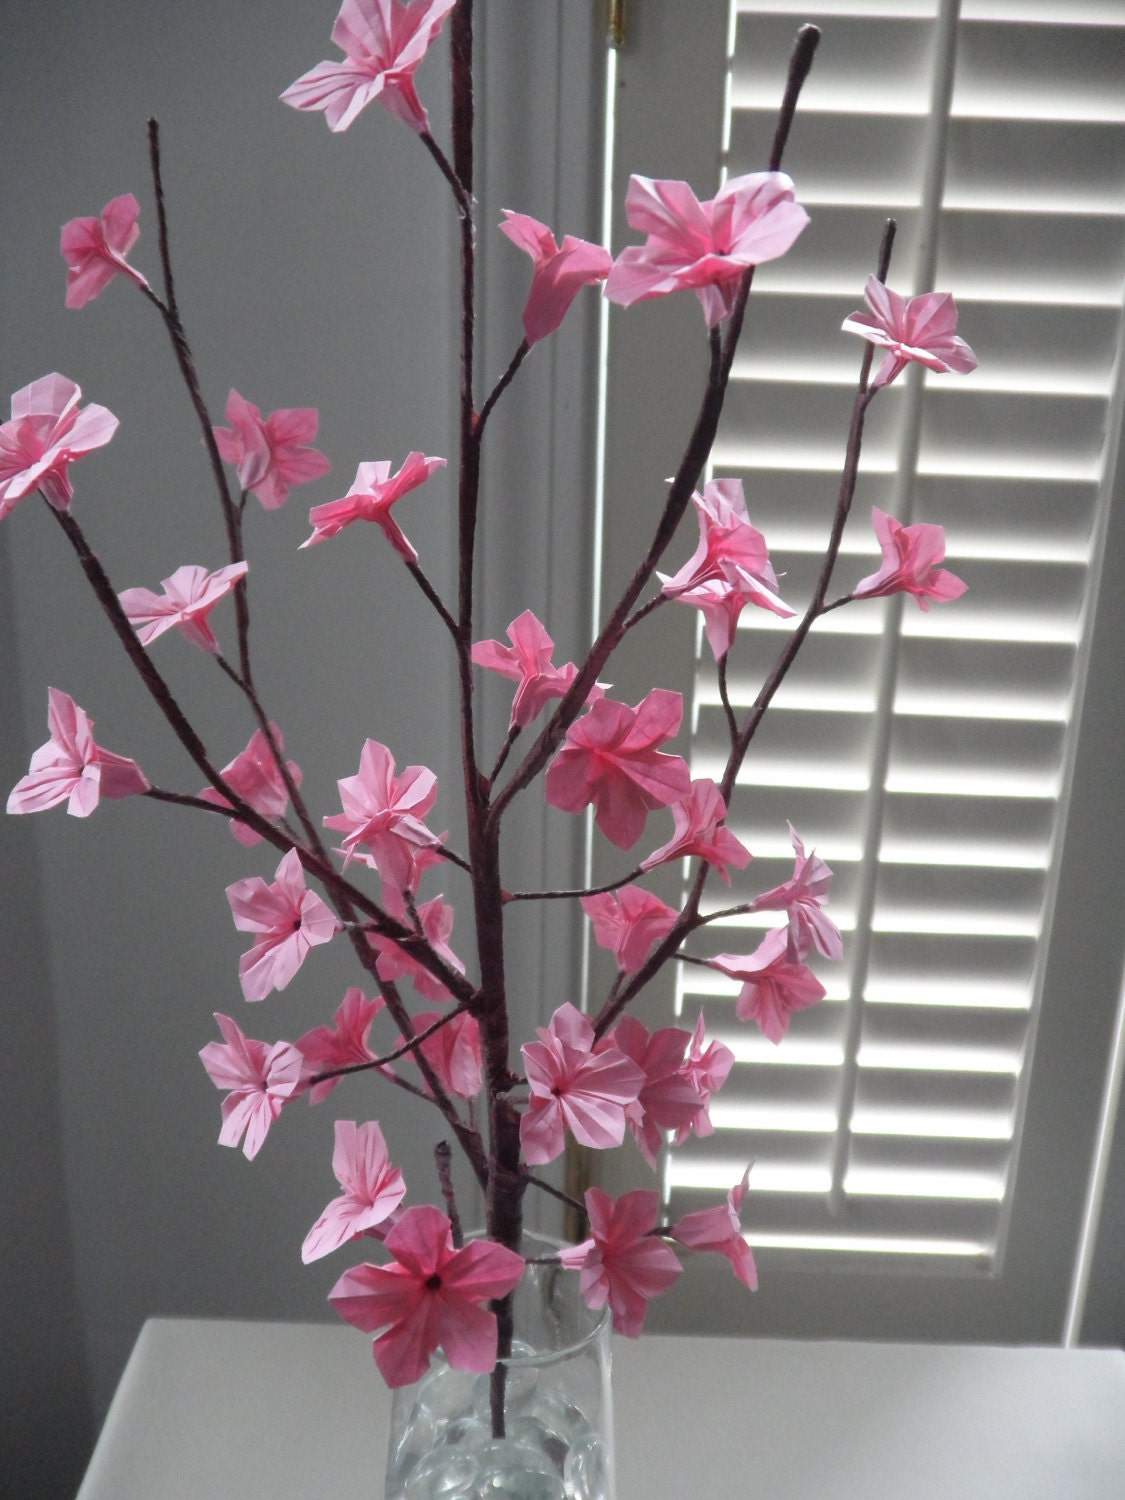 Origami Paper Cherry Blossoms Pink by DearBetsy on Etsy - photo#2